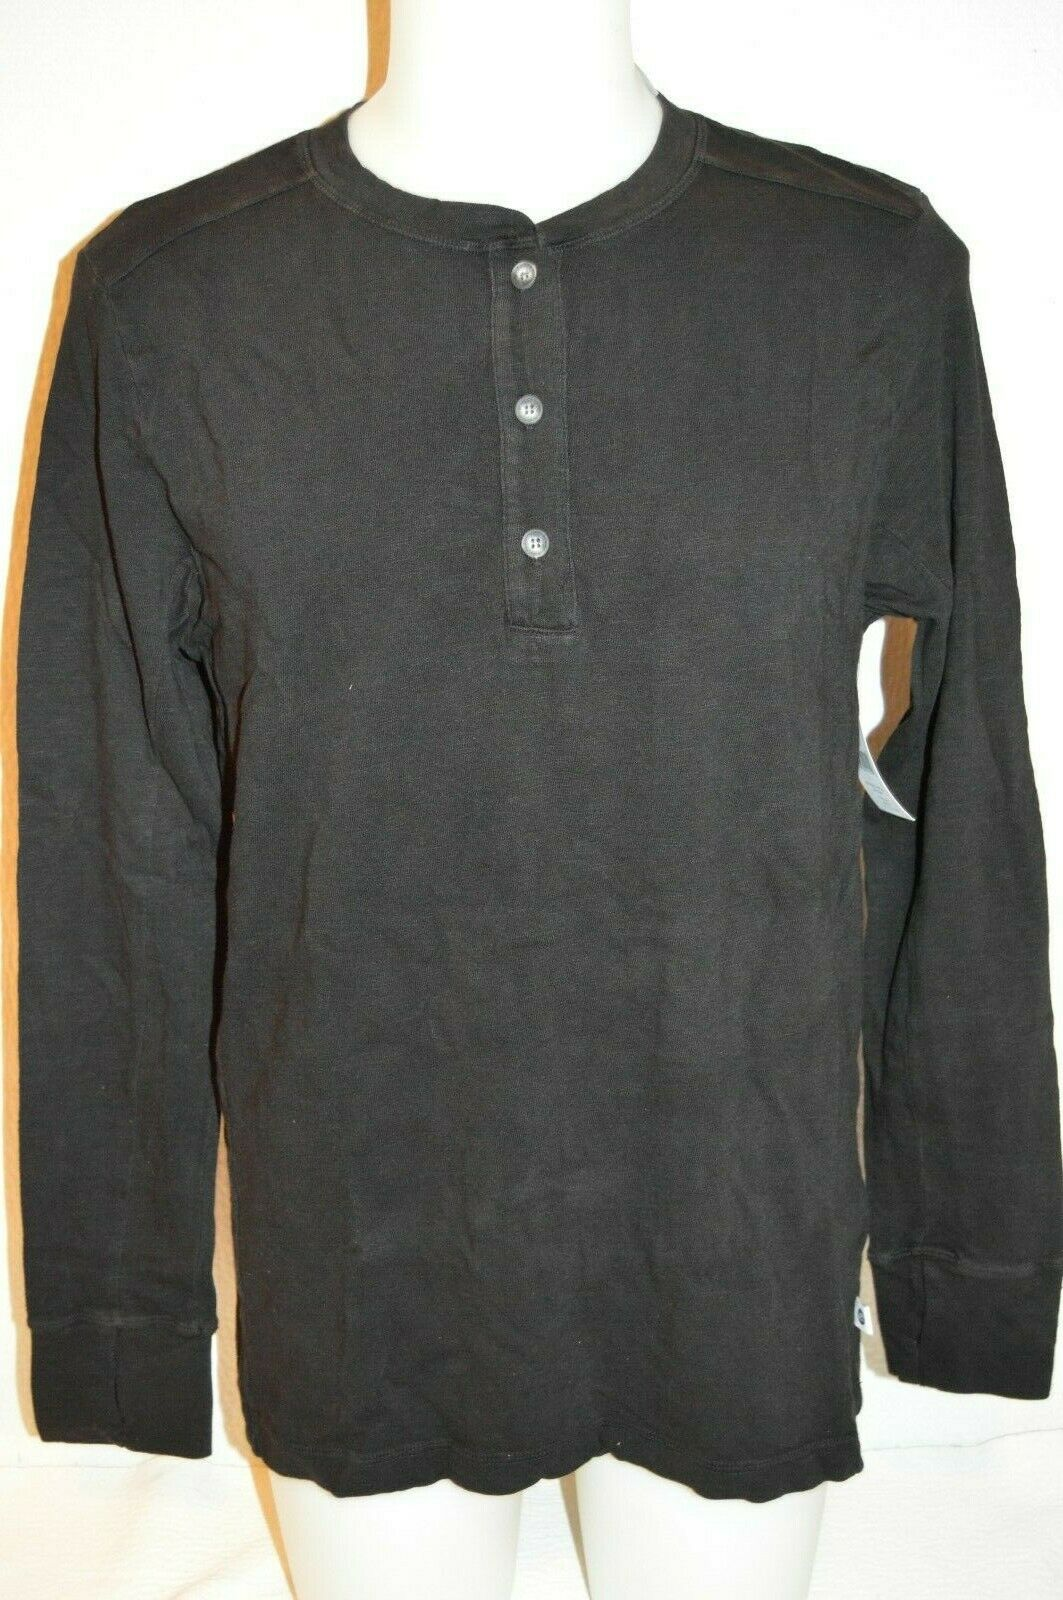 VIMMIA Premium Man's Long Sleeved T-hemd Henley NEW Größe groß  Retail  110